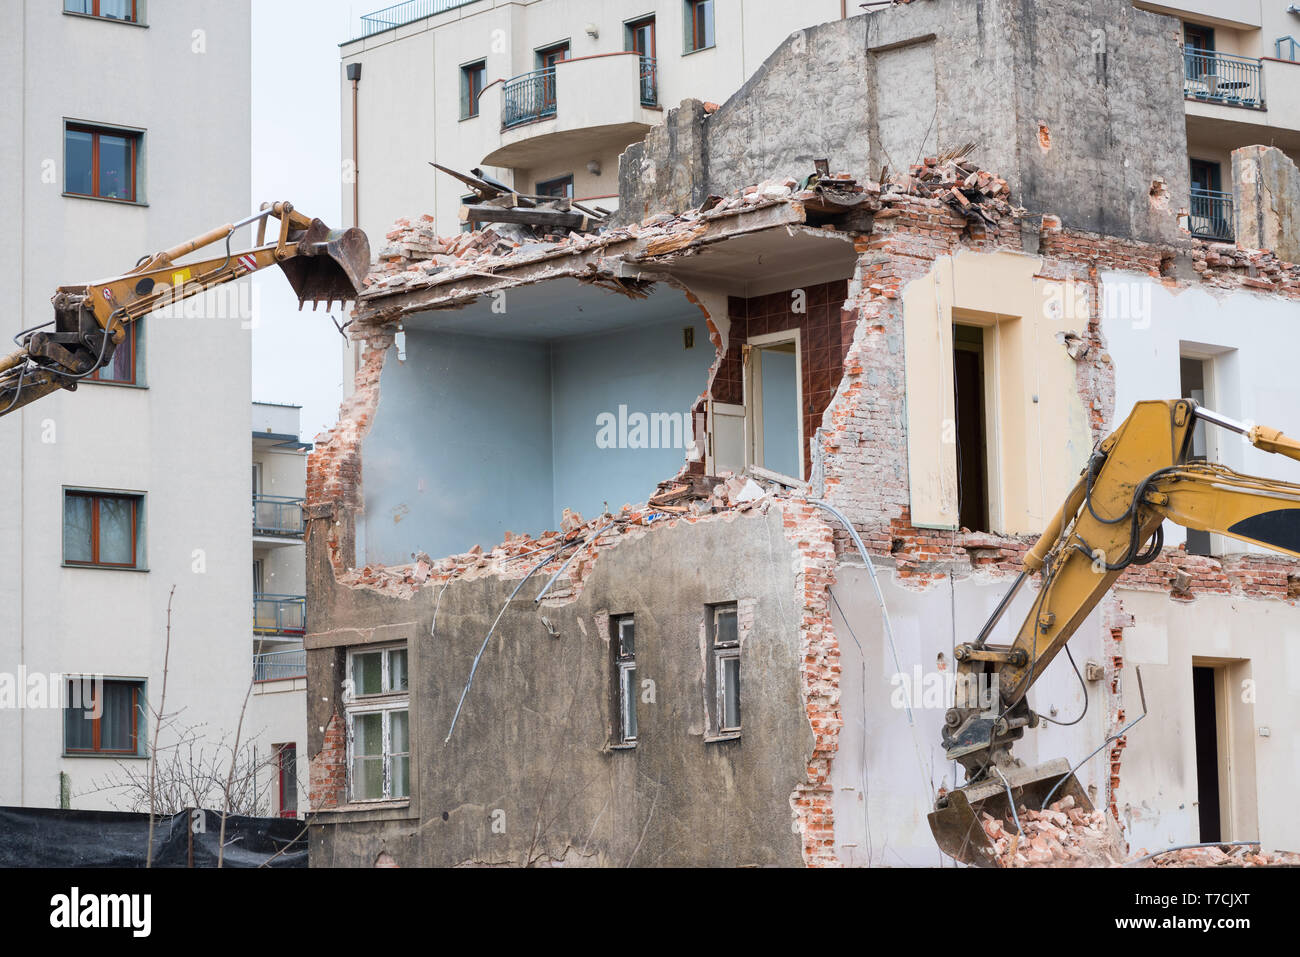 Old residential three story building demolition with hydraulic excavators - Stock Image